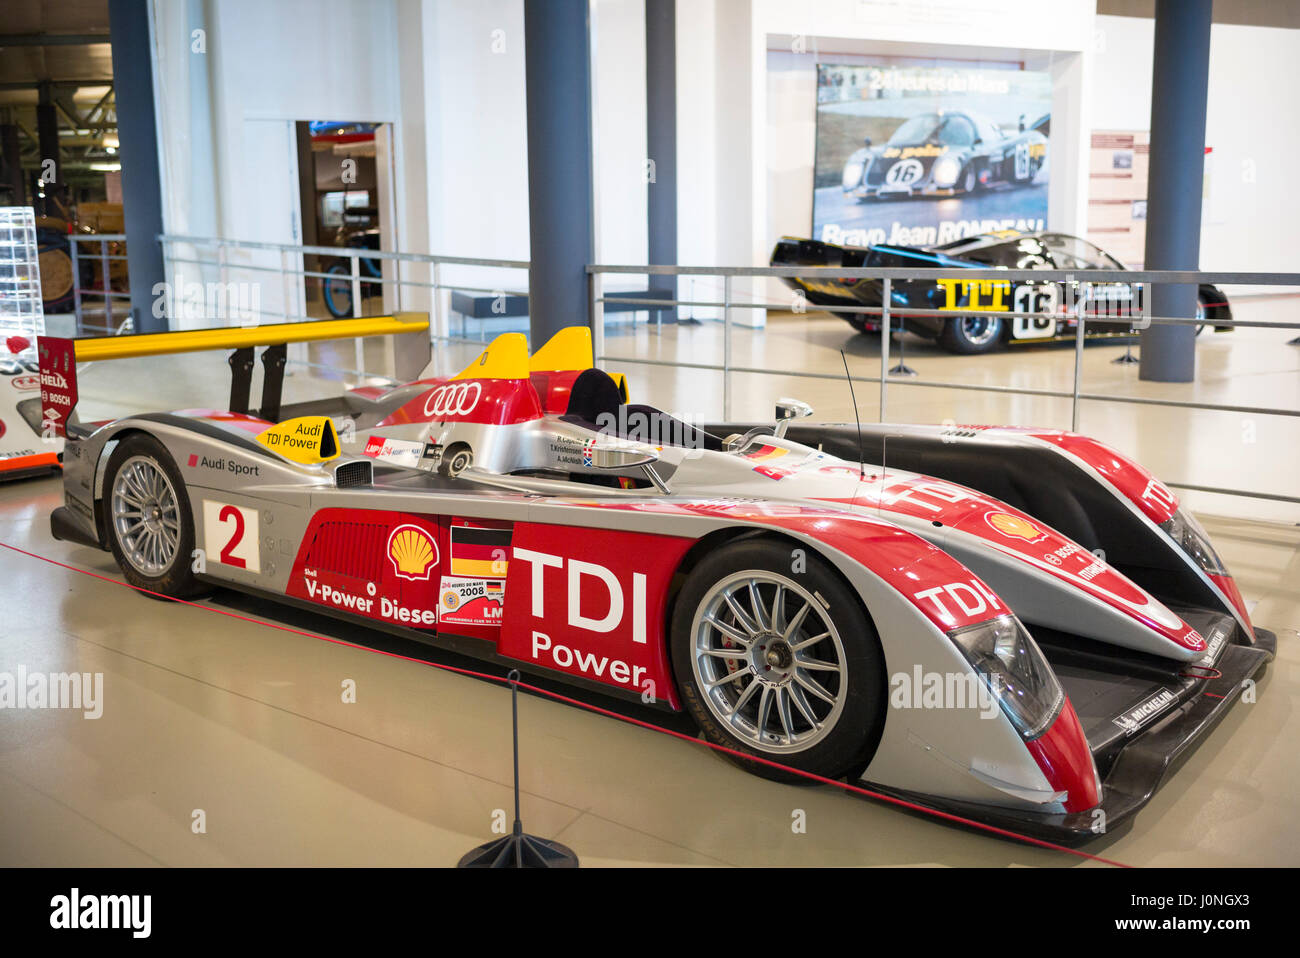 audi r10 tdi diesel race car 2008 at the exhibition musee at le mans stock photo royalty free. Black Bedroom Furniture Sets. Home Design Ideas